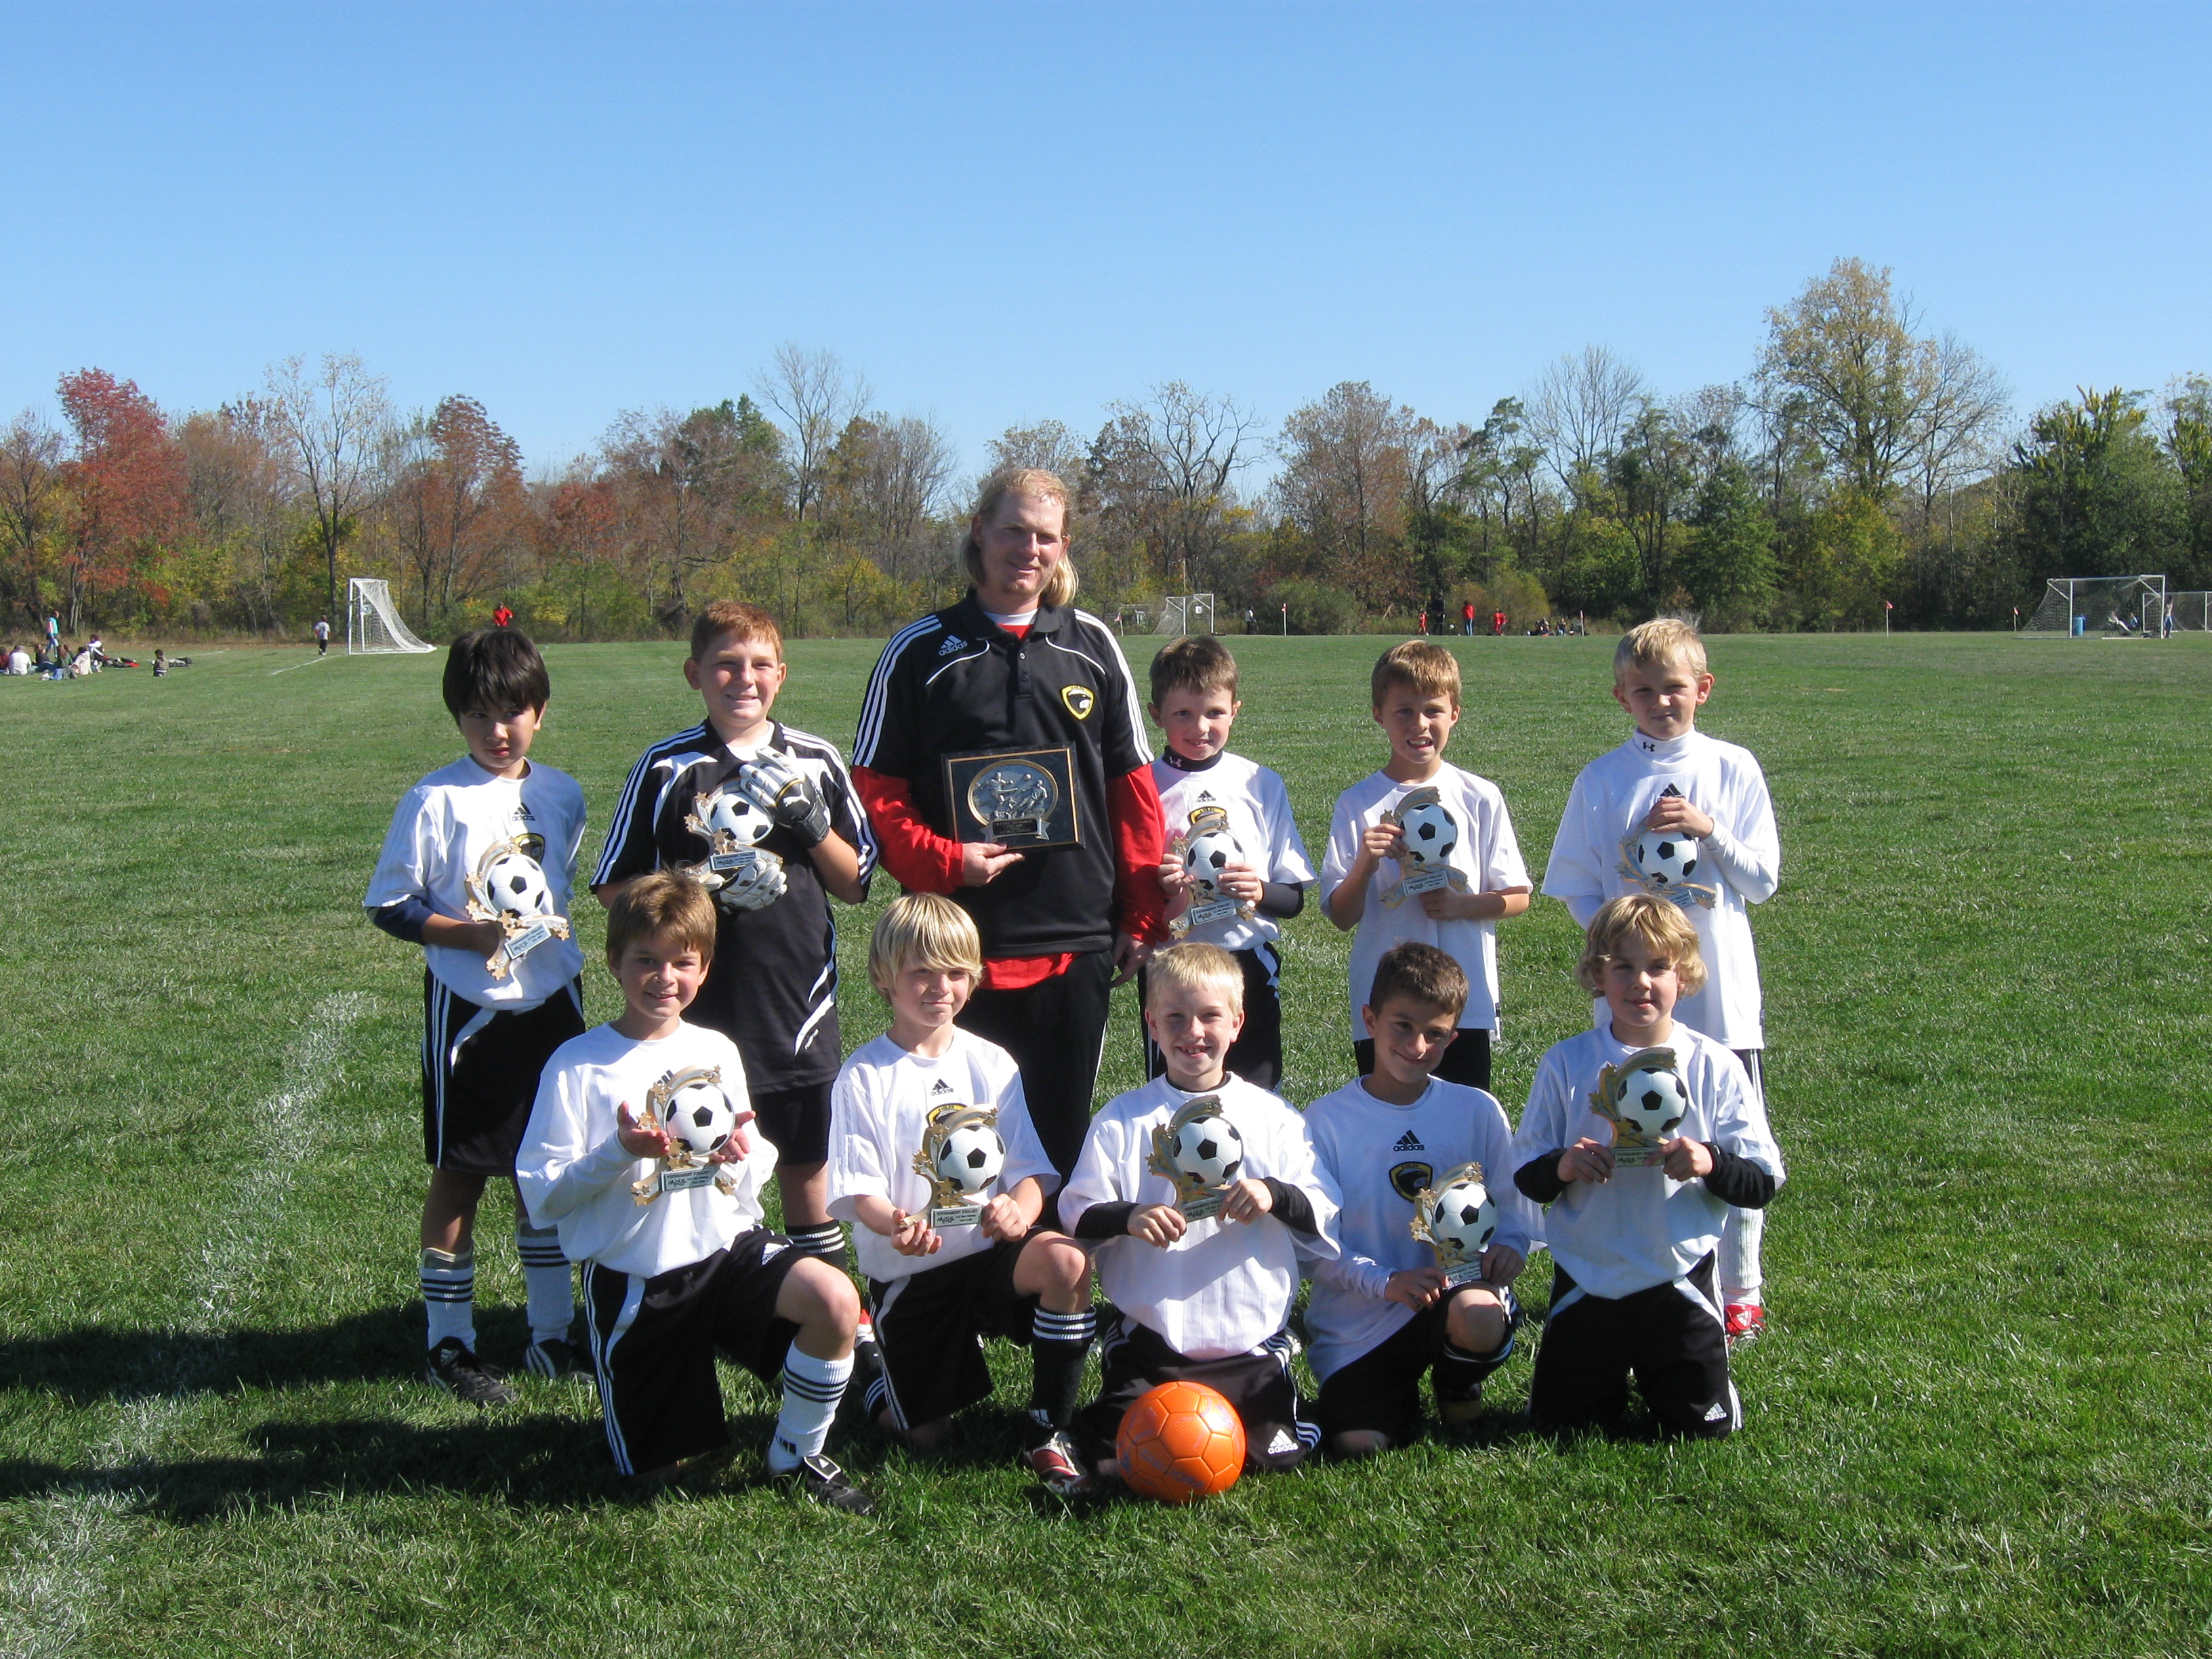 u10_boys_white_fall08.jpg